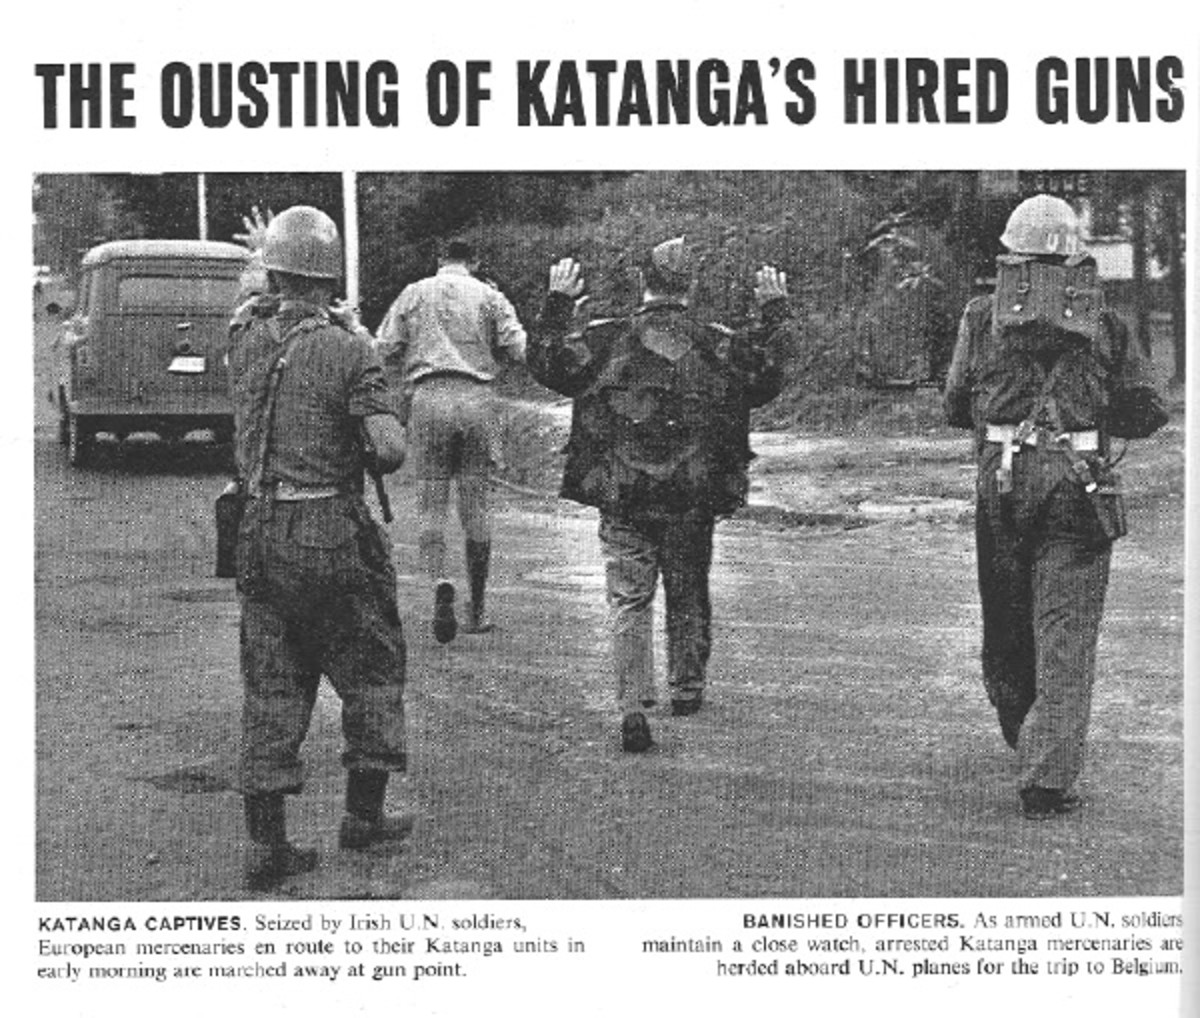 KATANGA CAPTIVES